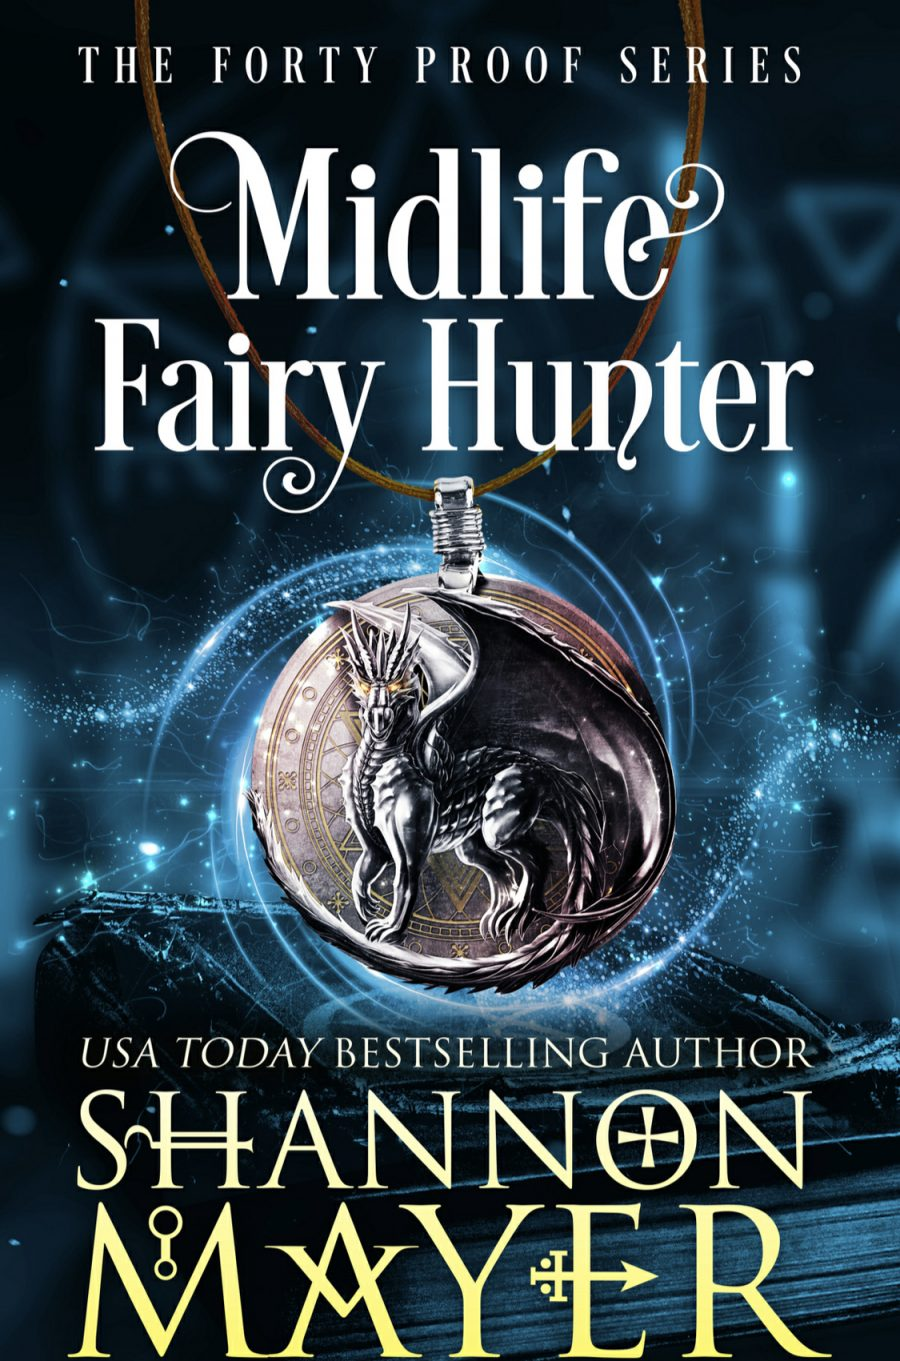 Midlife Fairy Hunter (Forty Proof Series - Book 2) by Shannon Mayer - A Book Review #BookReview #PNR #WomensFiction #KindleUnlimited #KU